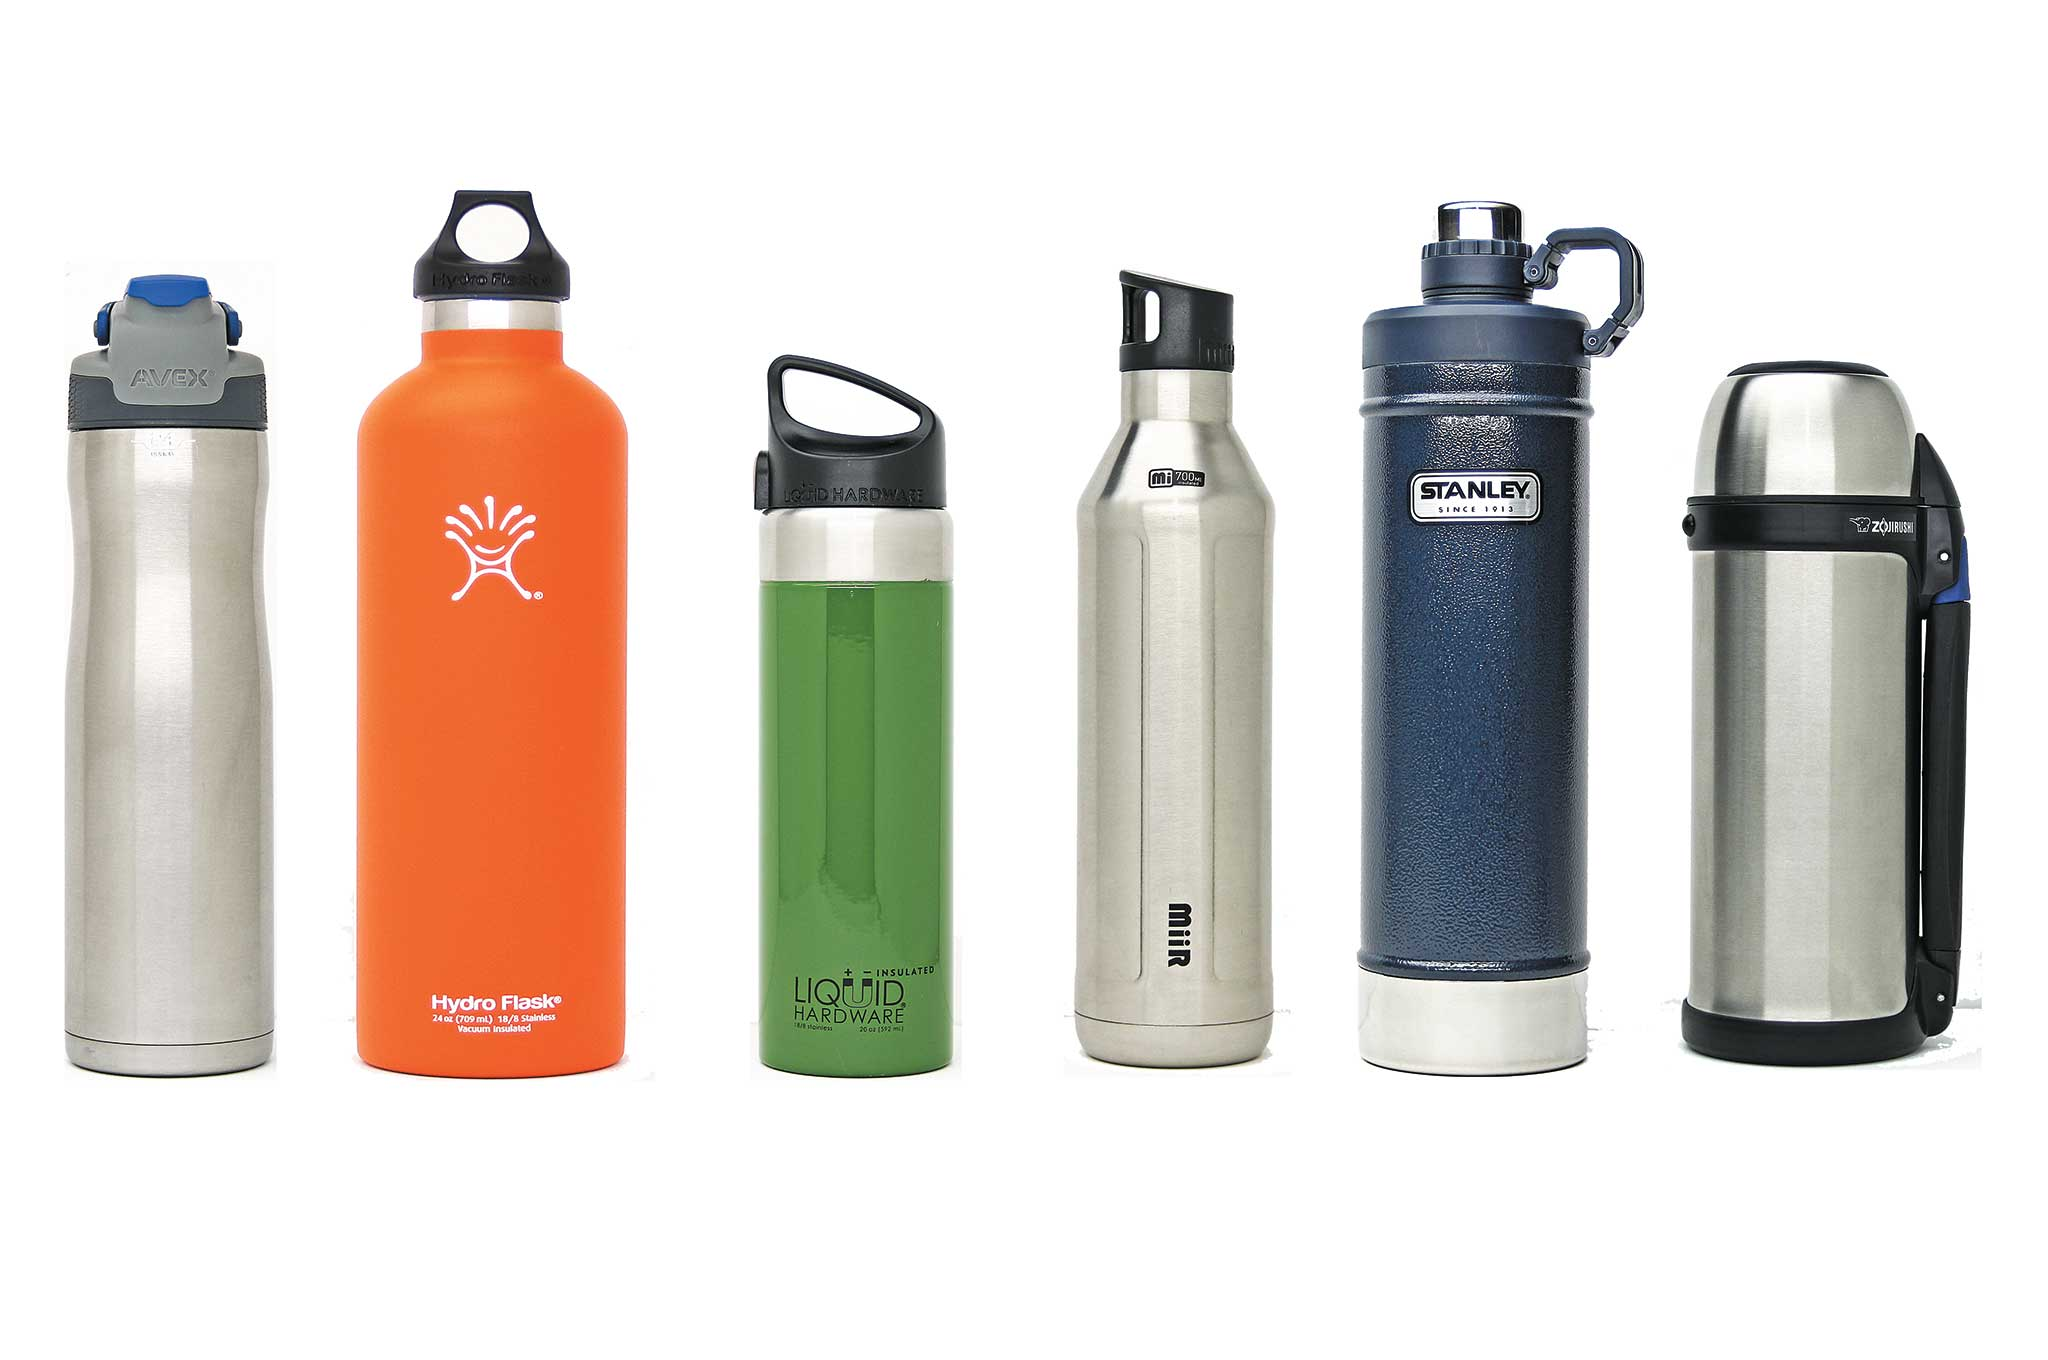 Stainless Steel Water Bottles Recoil Offgrid